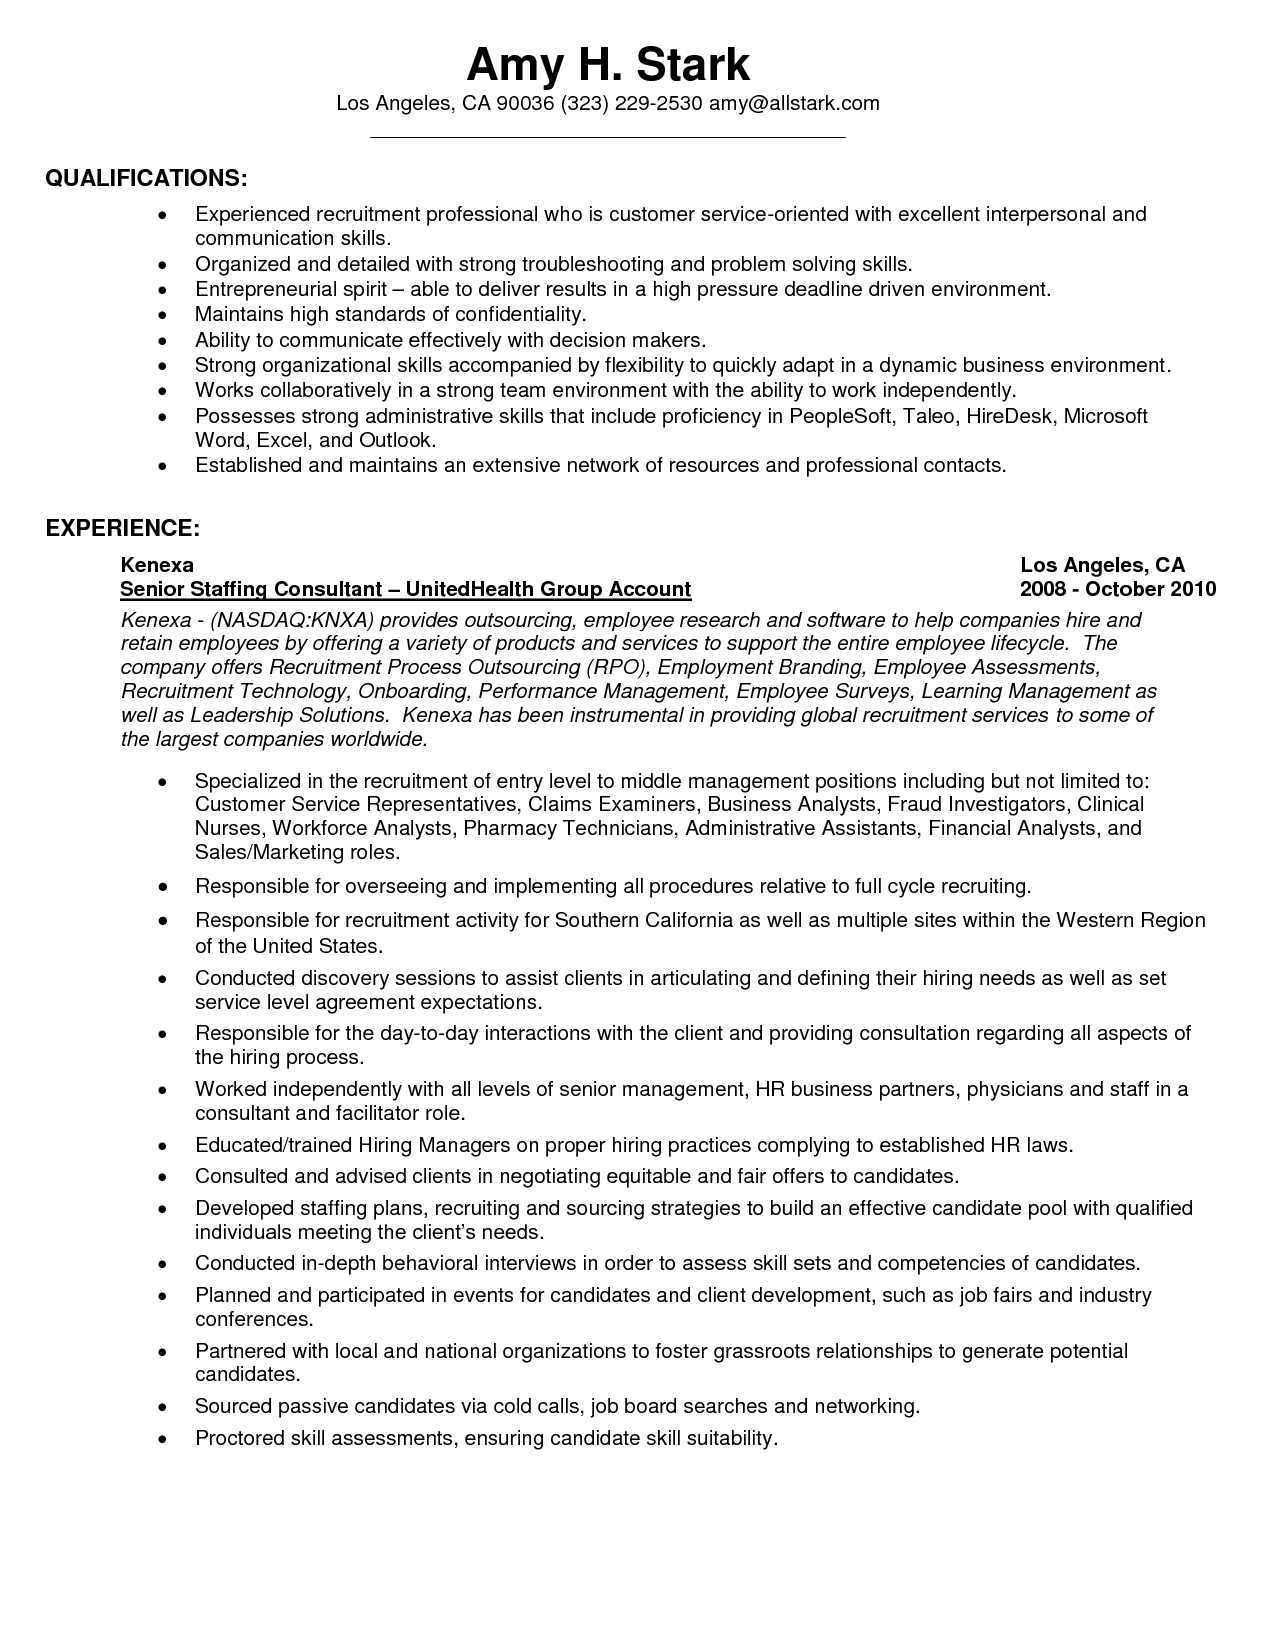 excellent customer service skills resume - Sample Resume Skills For Customer Service